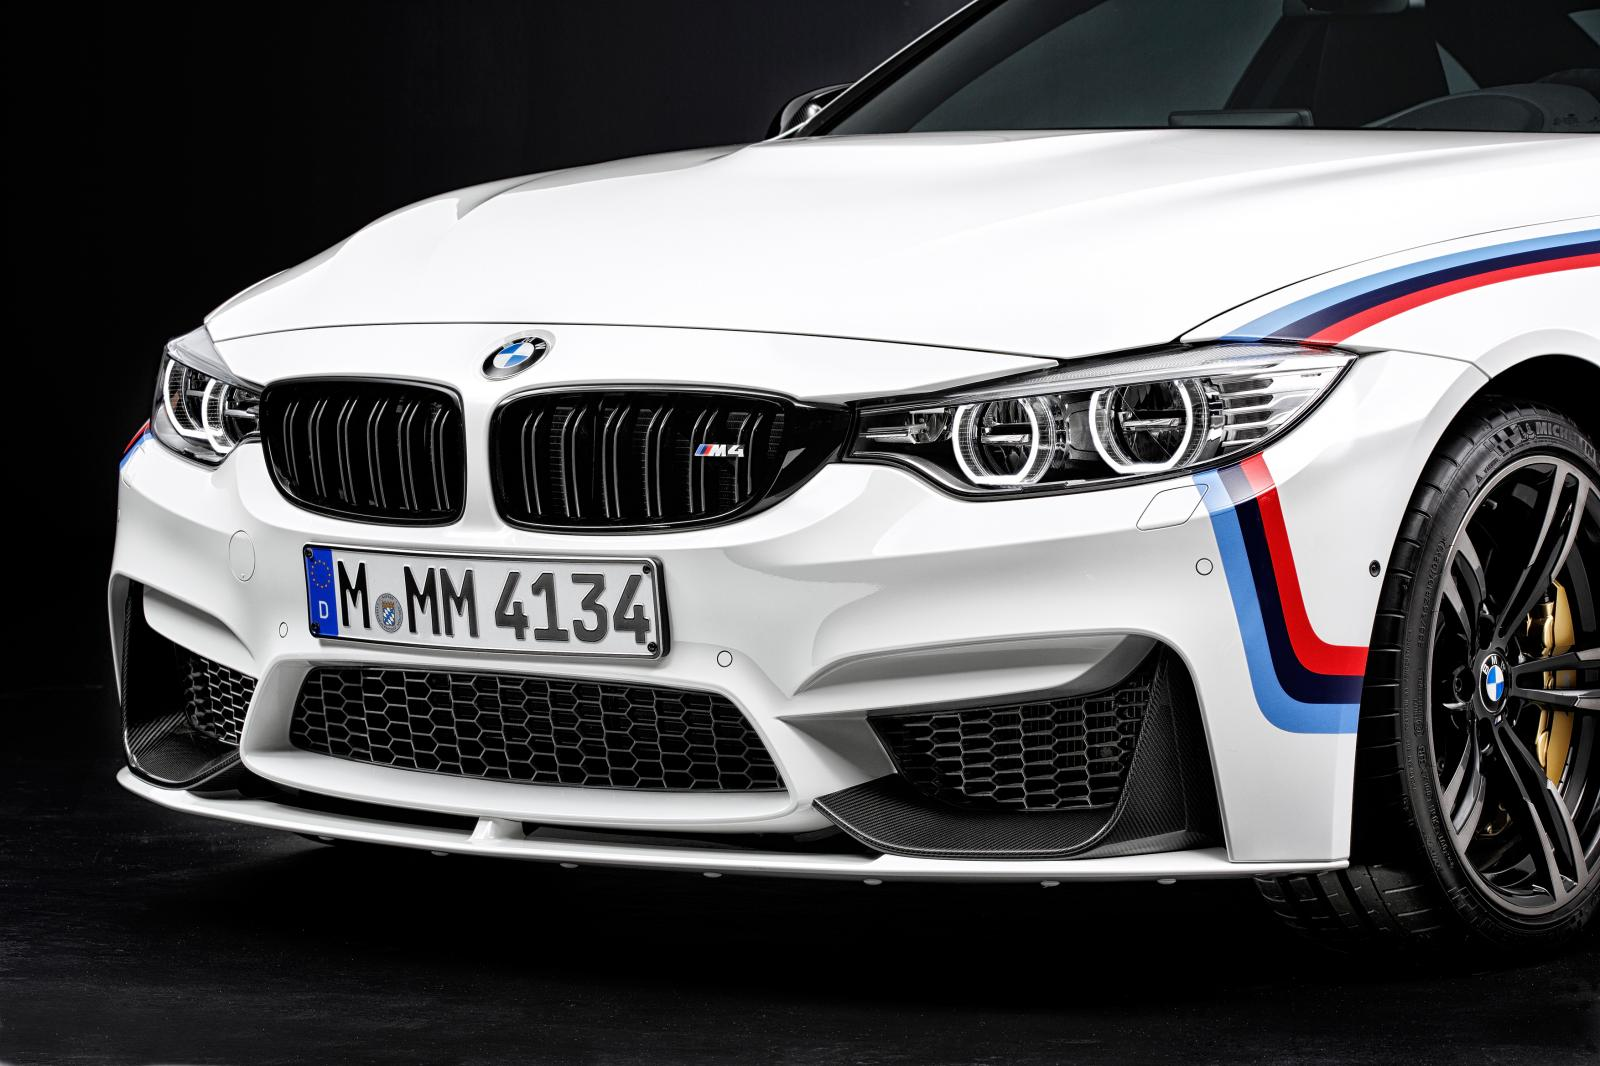 2015 BMW M4 with M Performance accessories bumper splitter